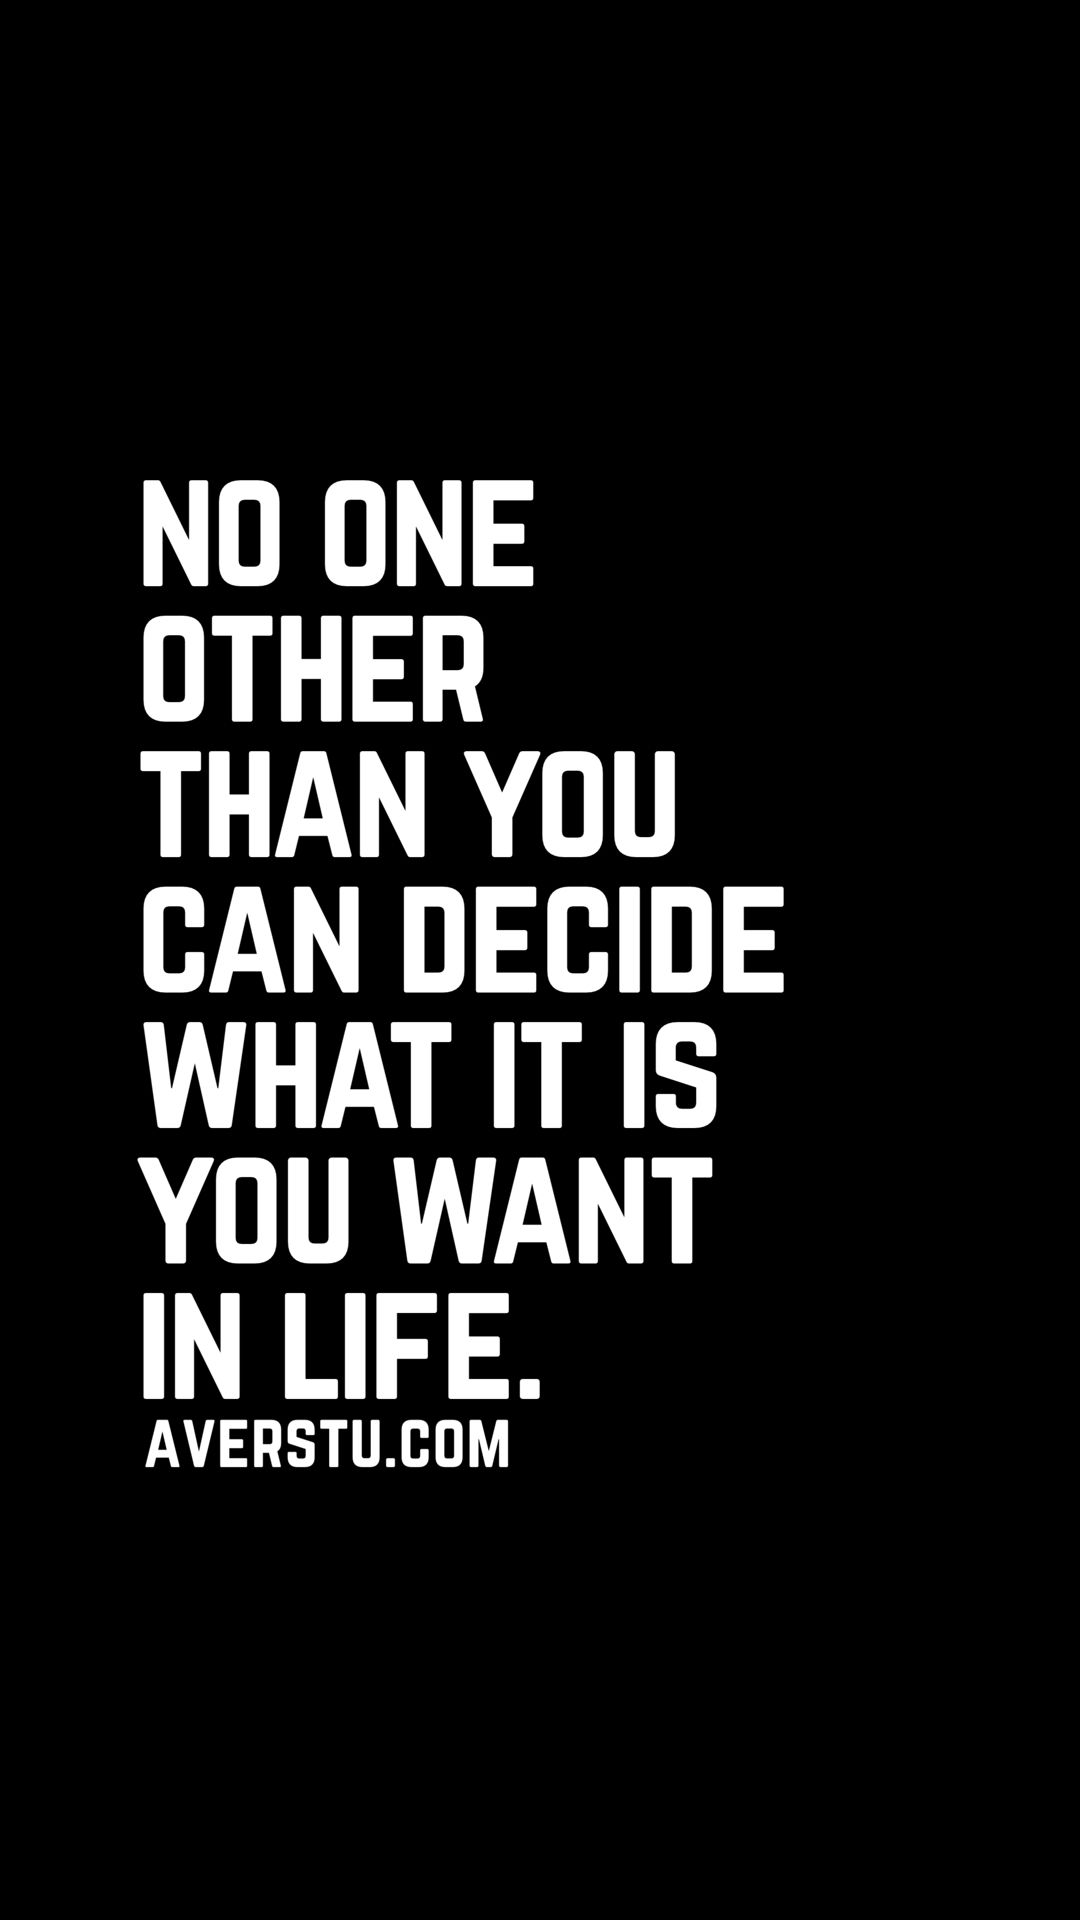 1200 Motivational Quotes (Part 11) - The Ultimate Inspirational Life Quotes